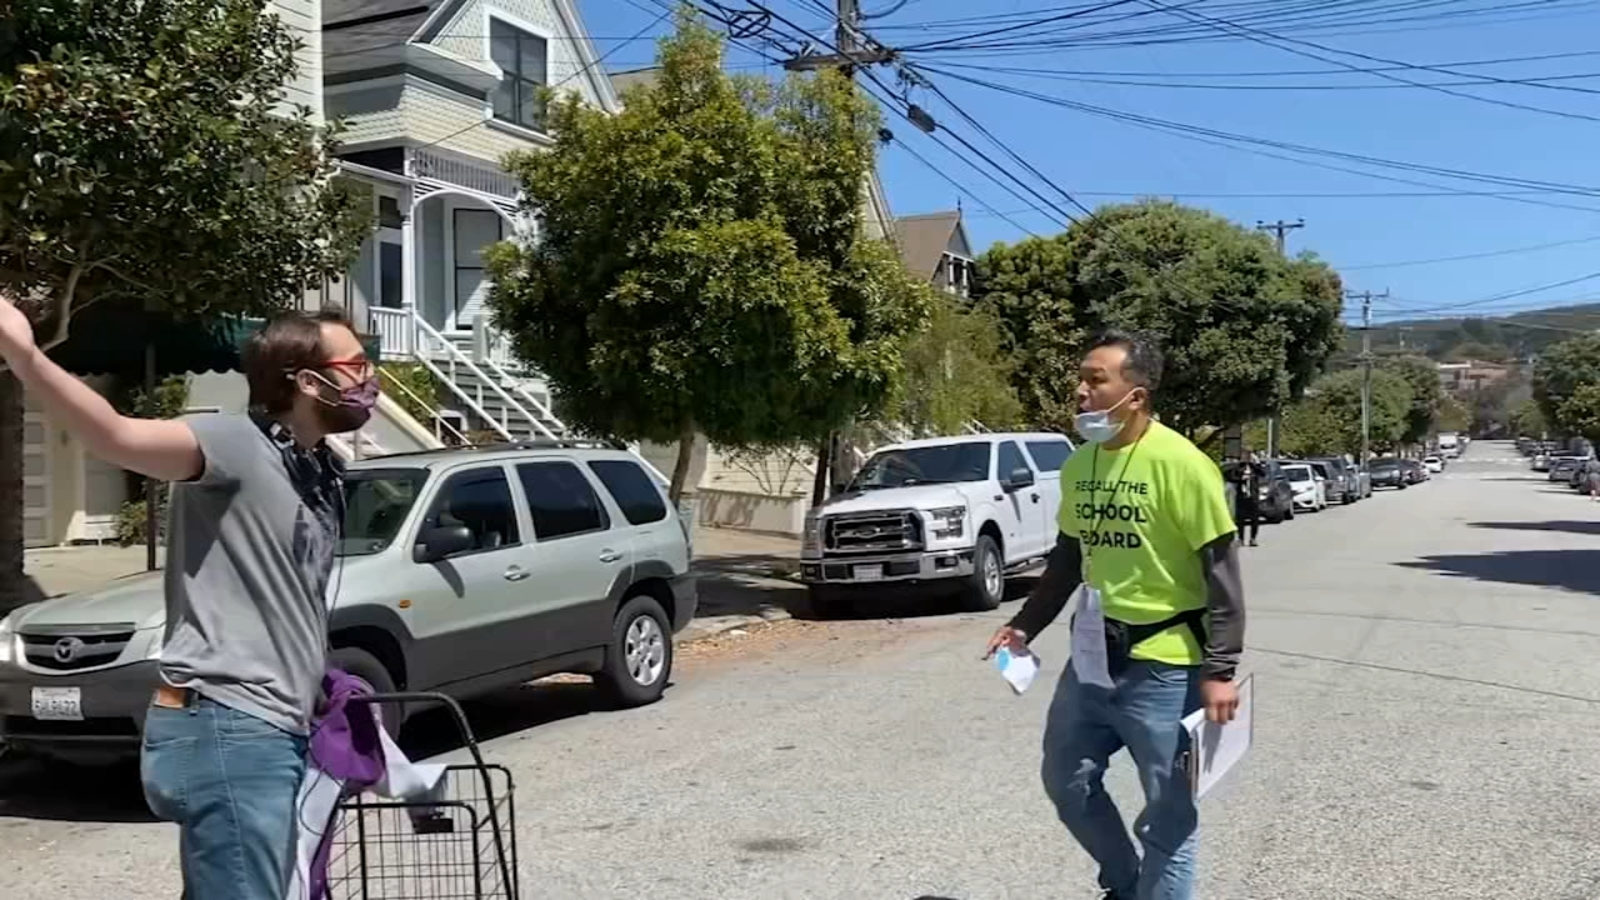 Video shows tense moments after man steals, then returns signatures for SF school board recall